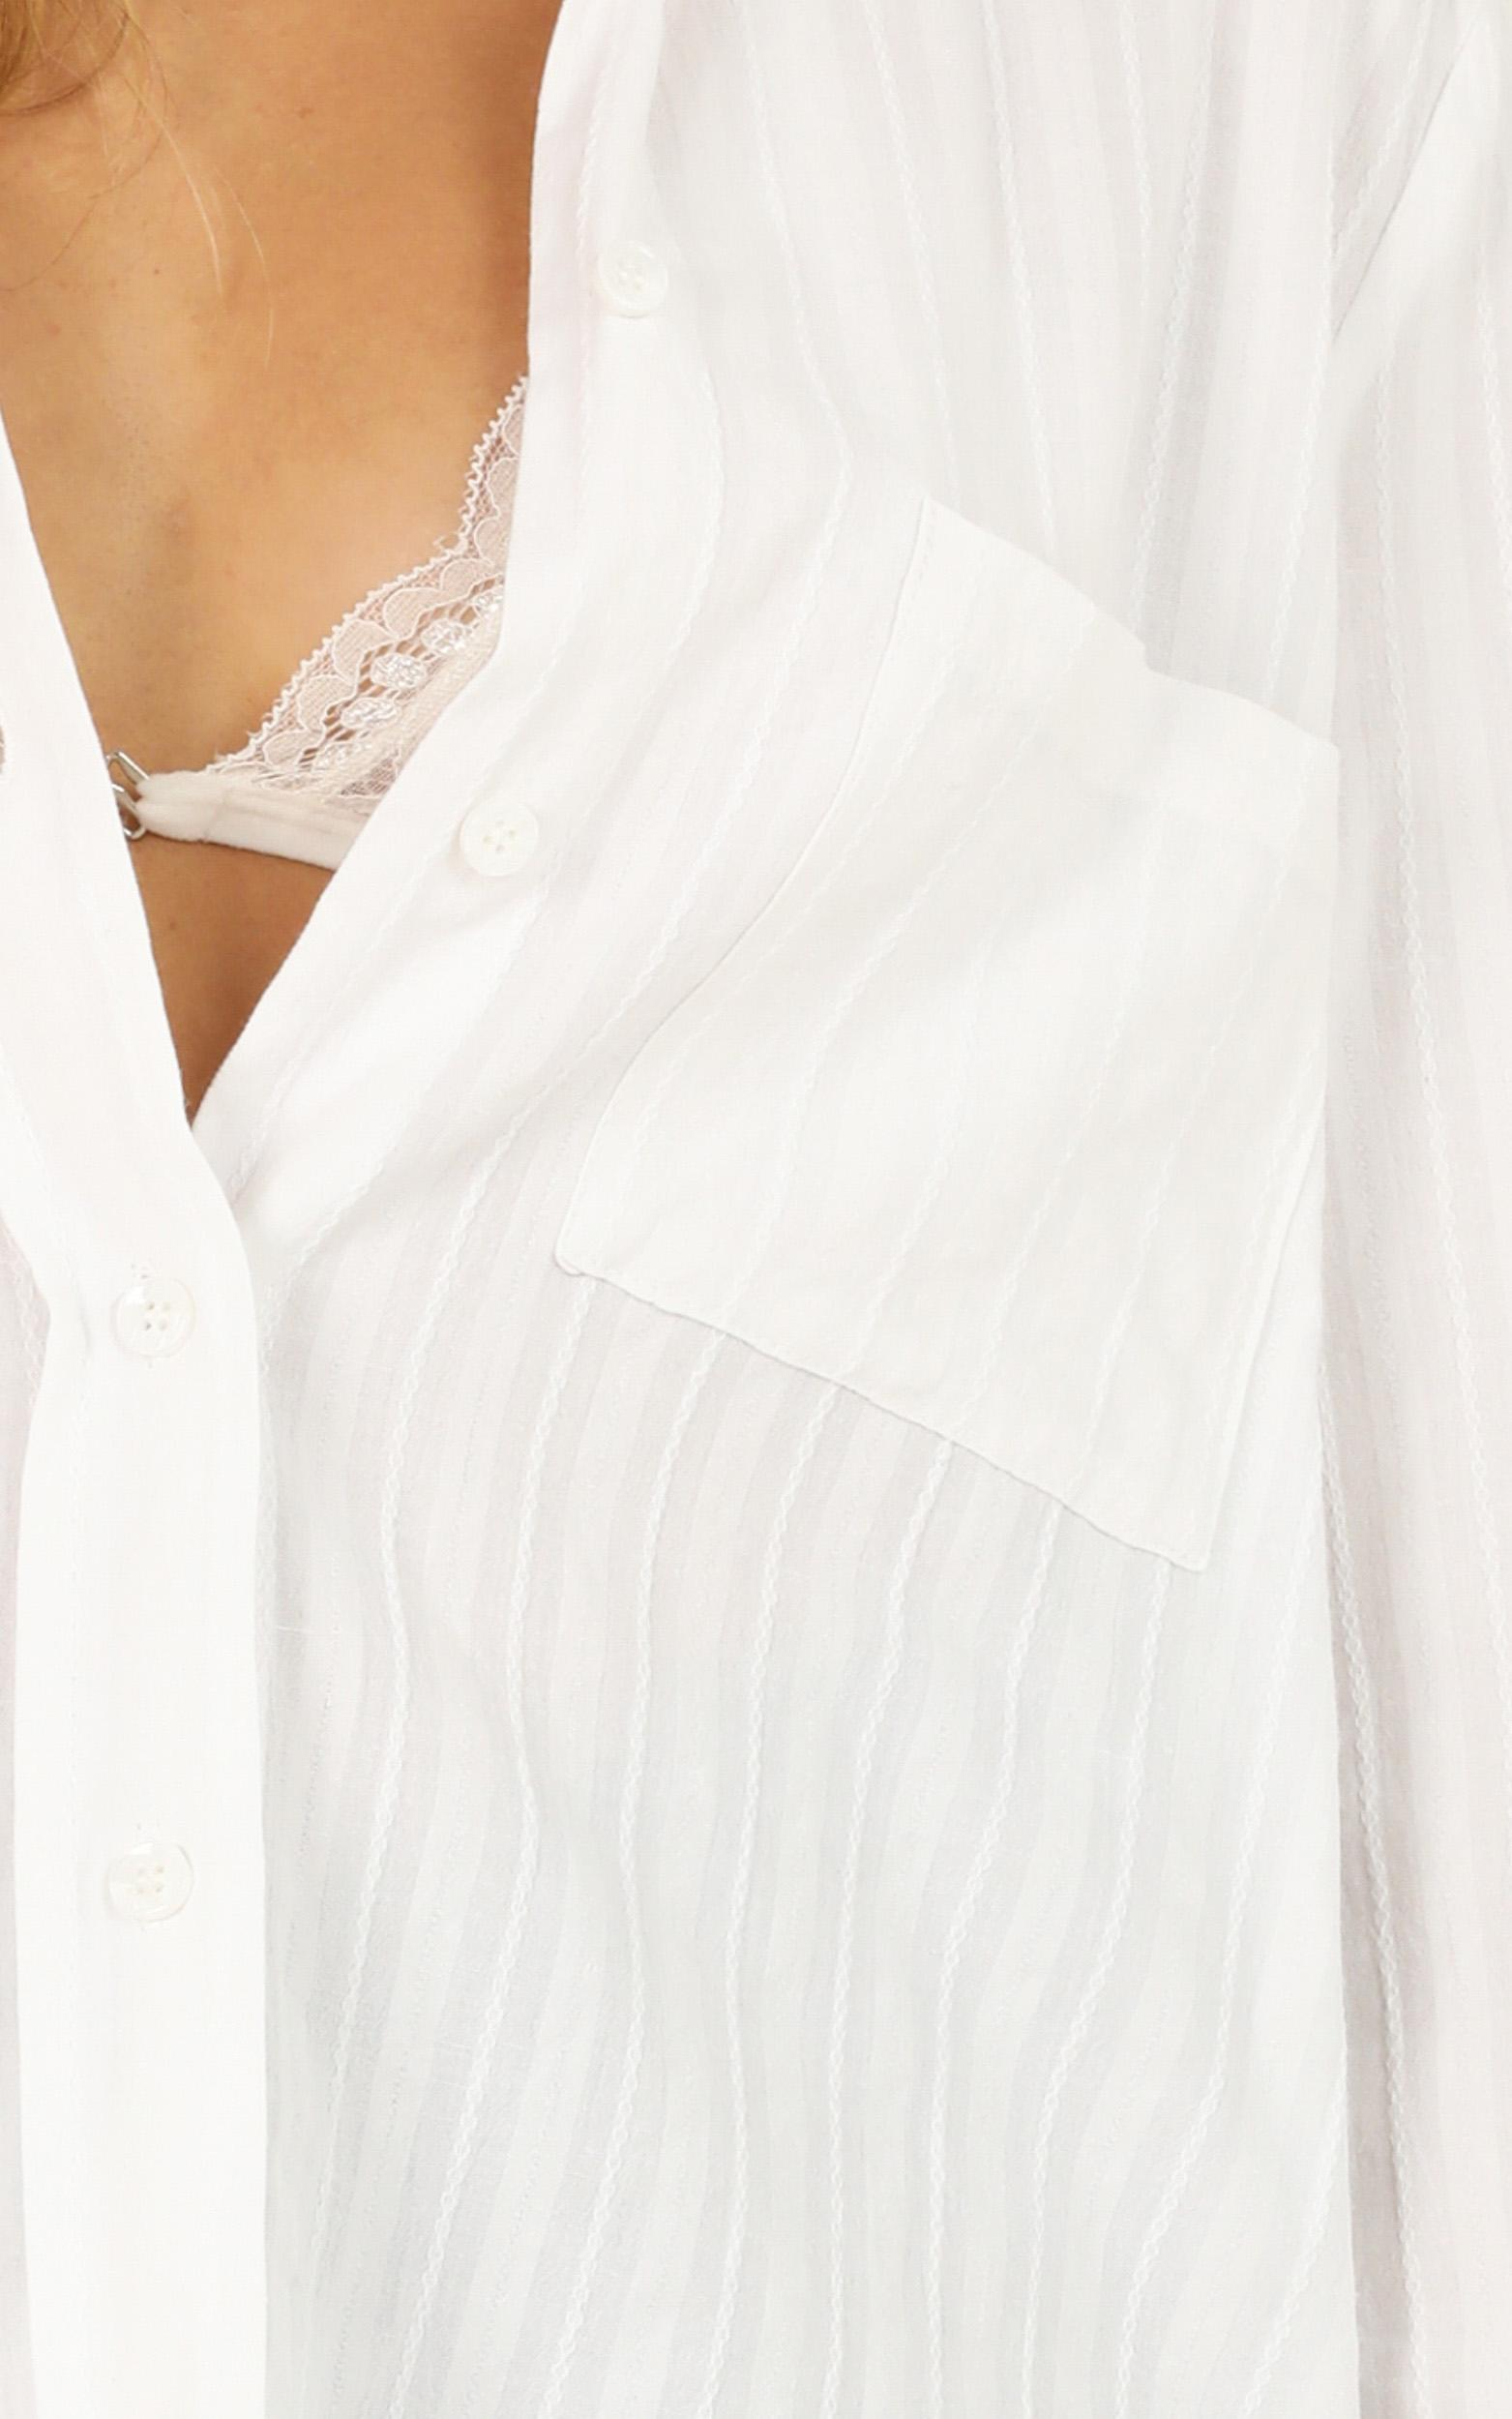 New Look Top In white linen look - 14 (XL), White, hi-res image number null